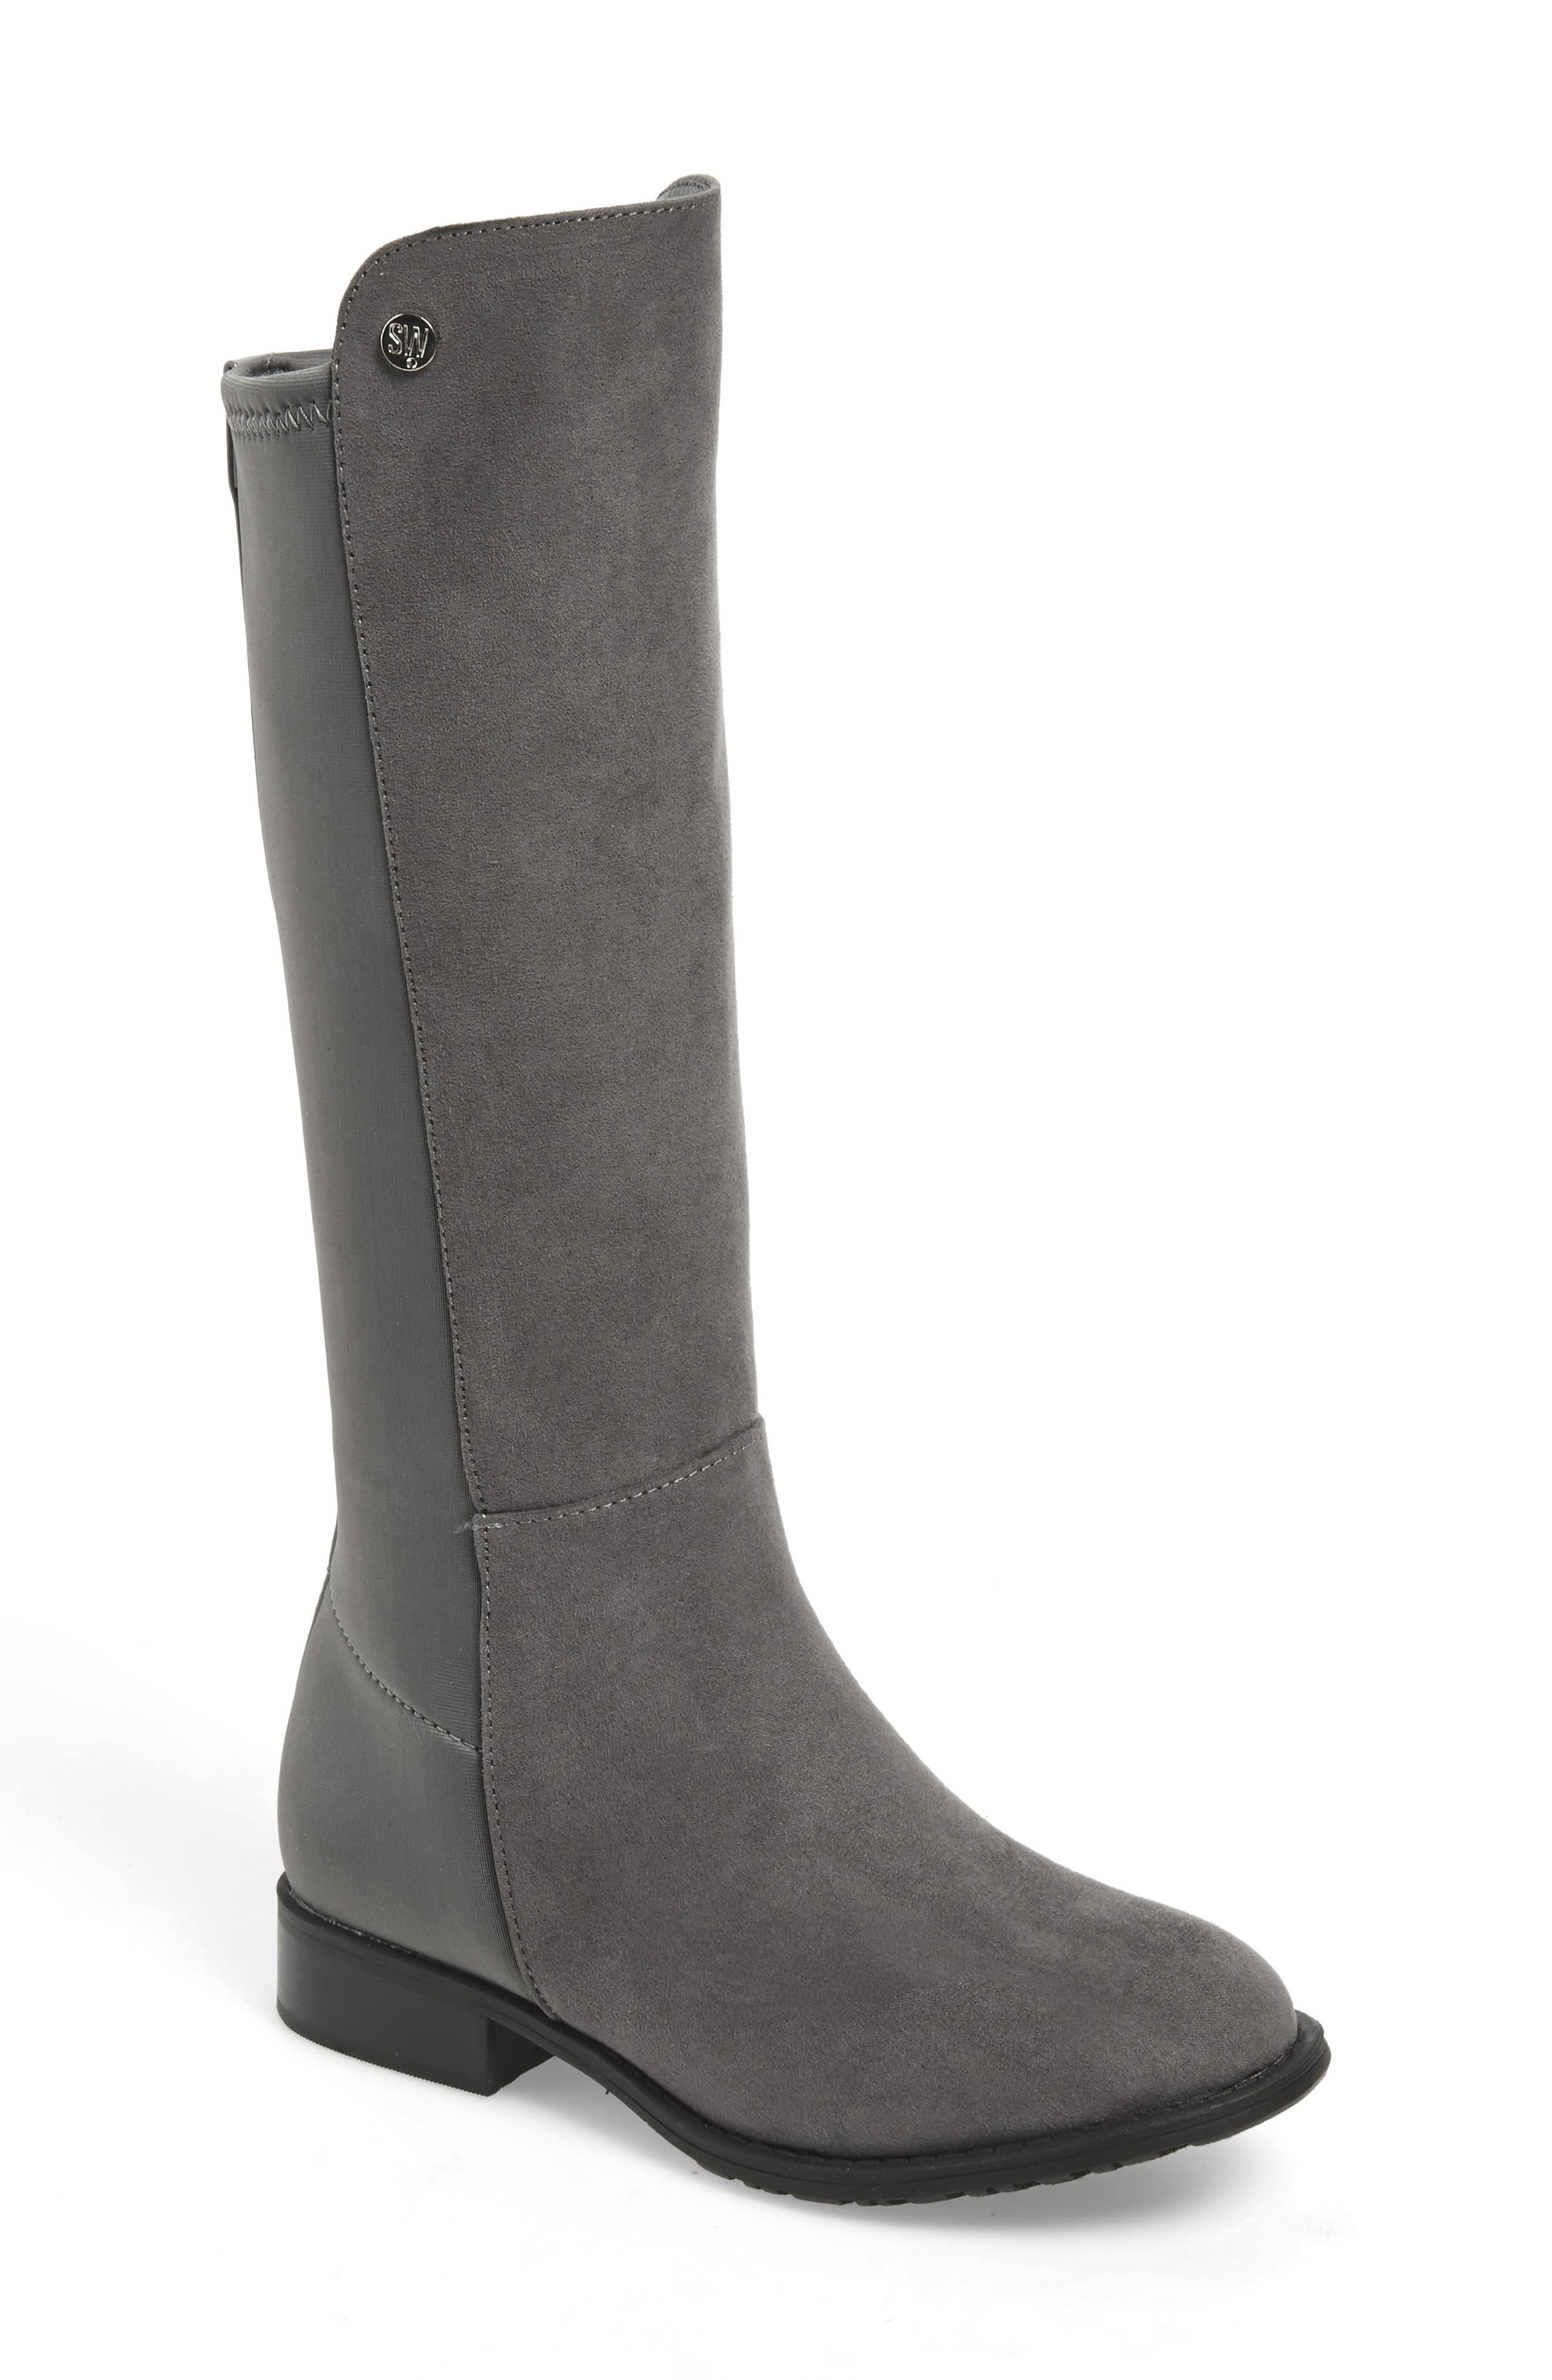 5050 Tall Riding Boot,                         Main,                         color, 050